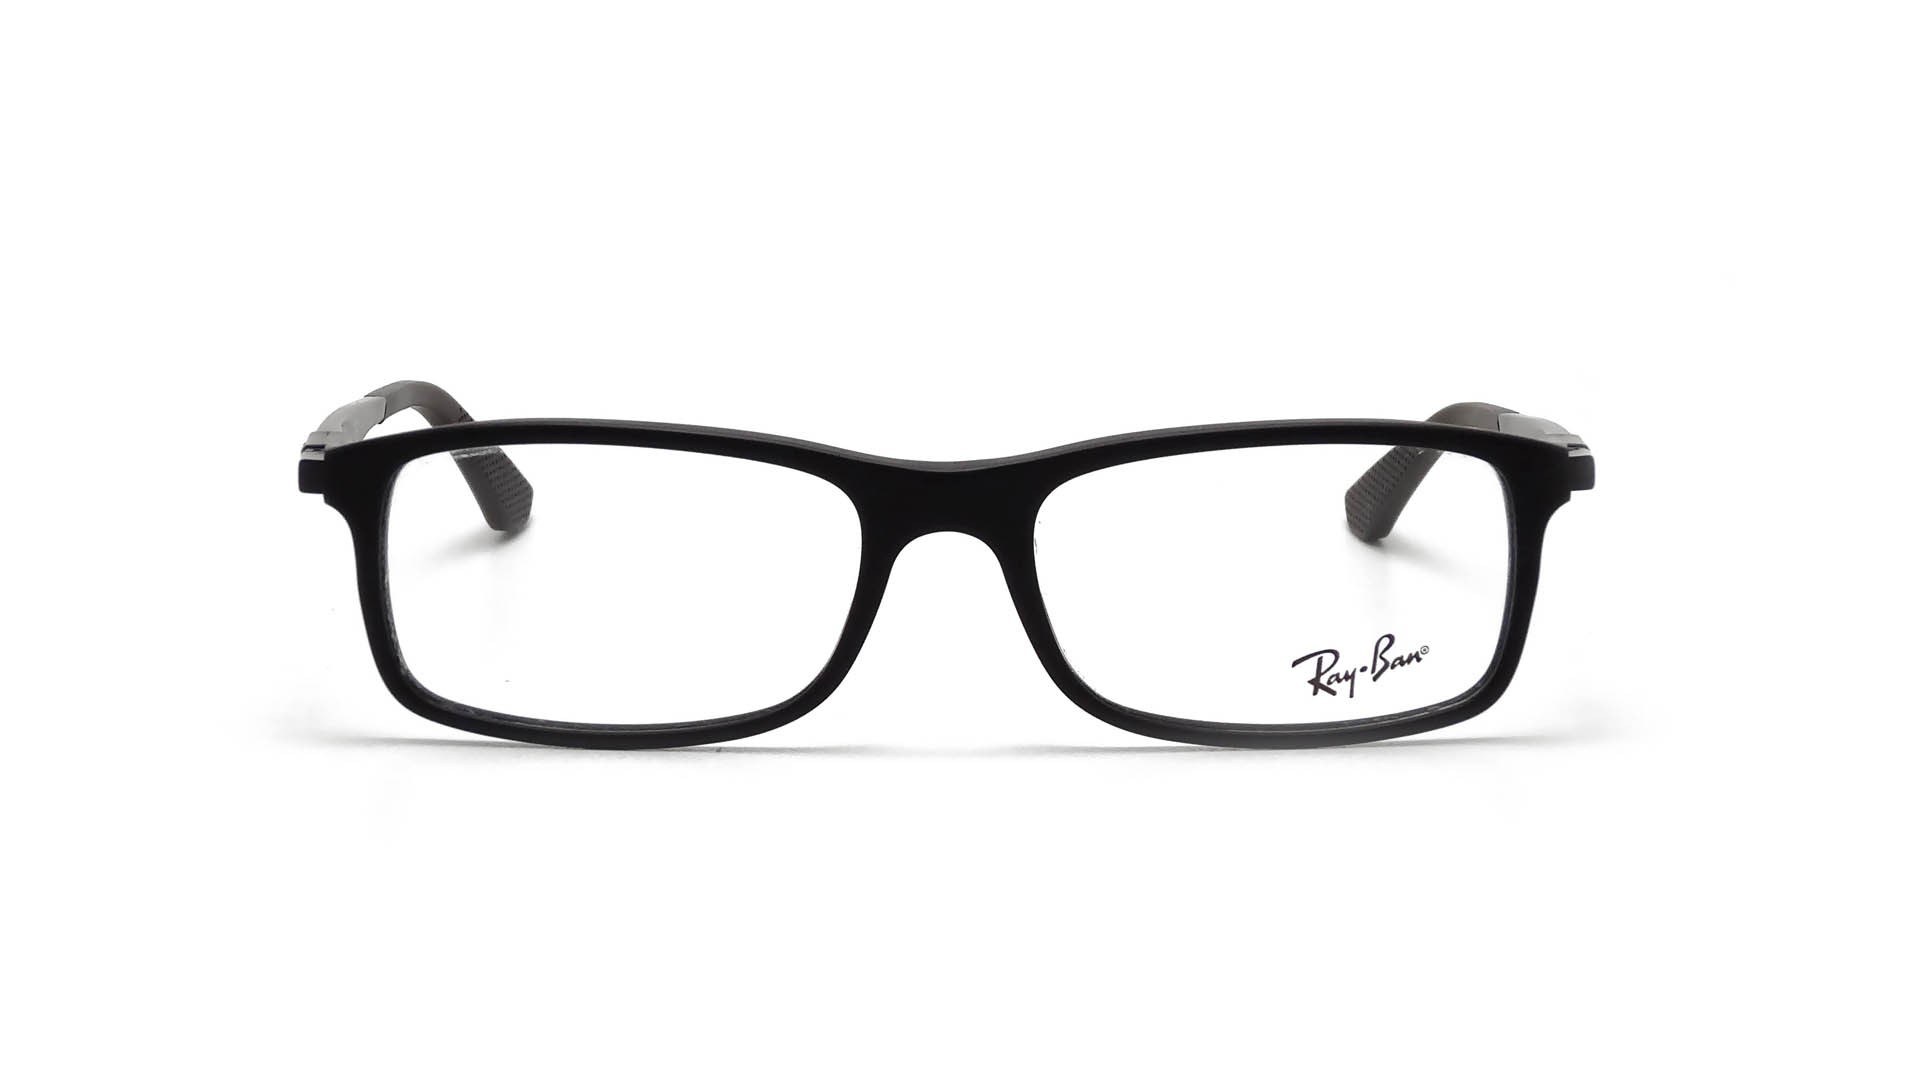 49f1575c3e7 Eyeglasses Ray-Ban RX7017 RB7017 5196 54-17 Black Medium